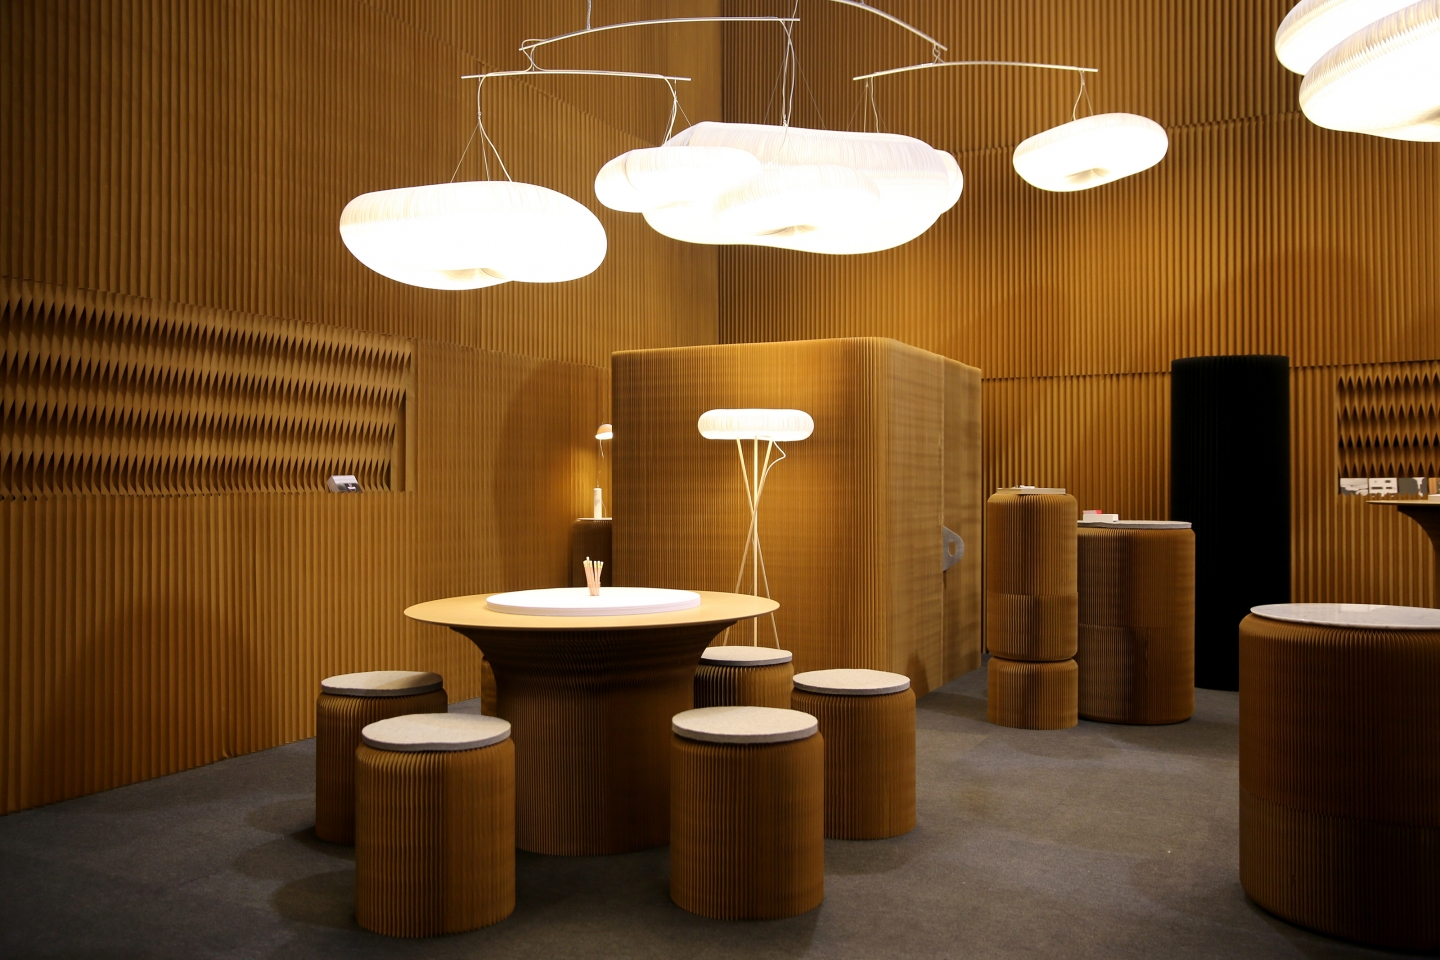 paper stools and cantilever table, cloud soft lighting - molo's installation at Maison & Objet, 2016